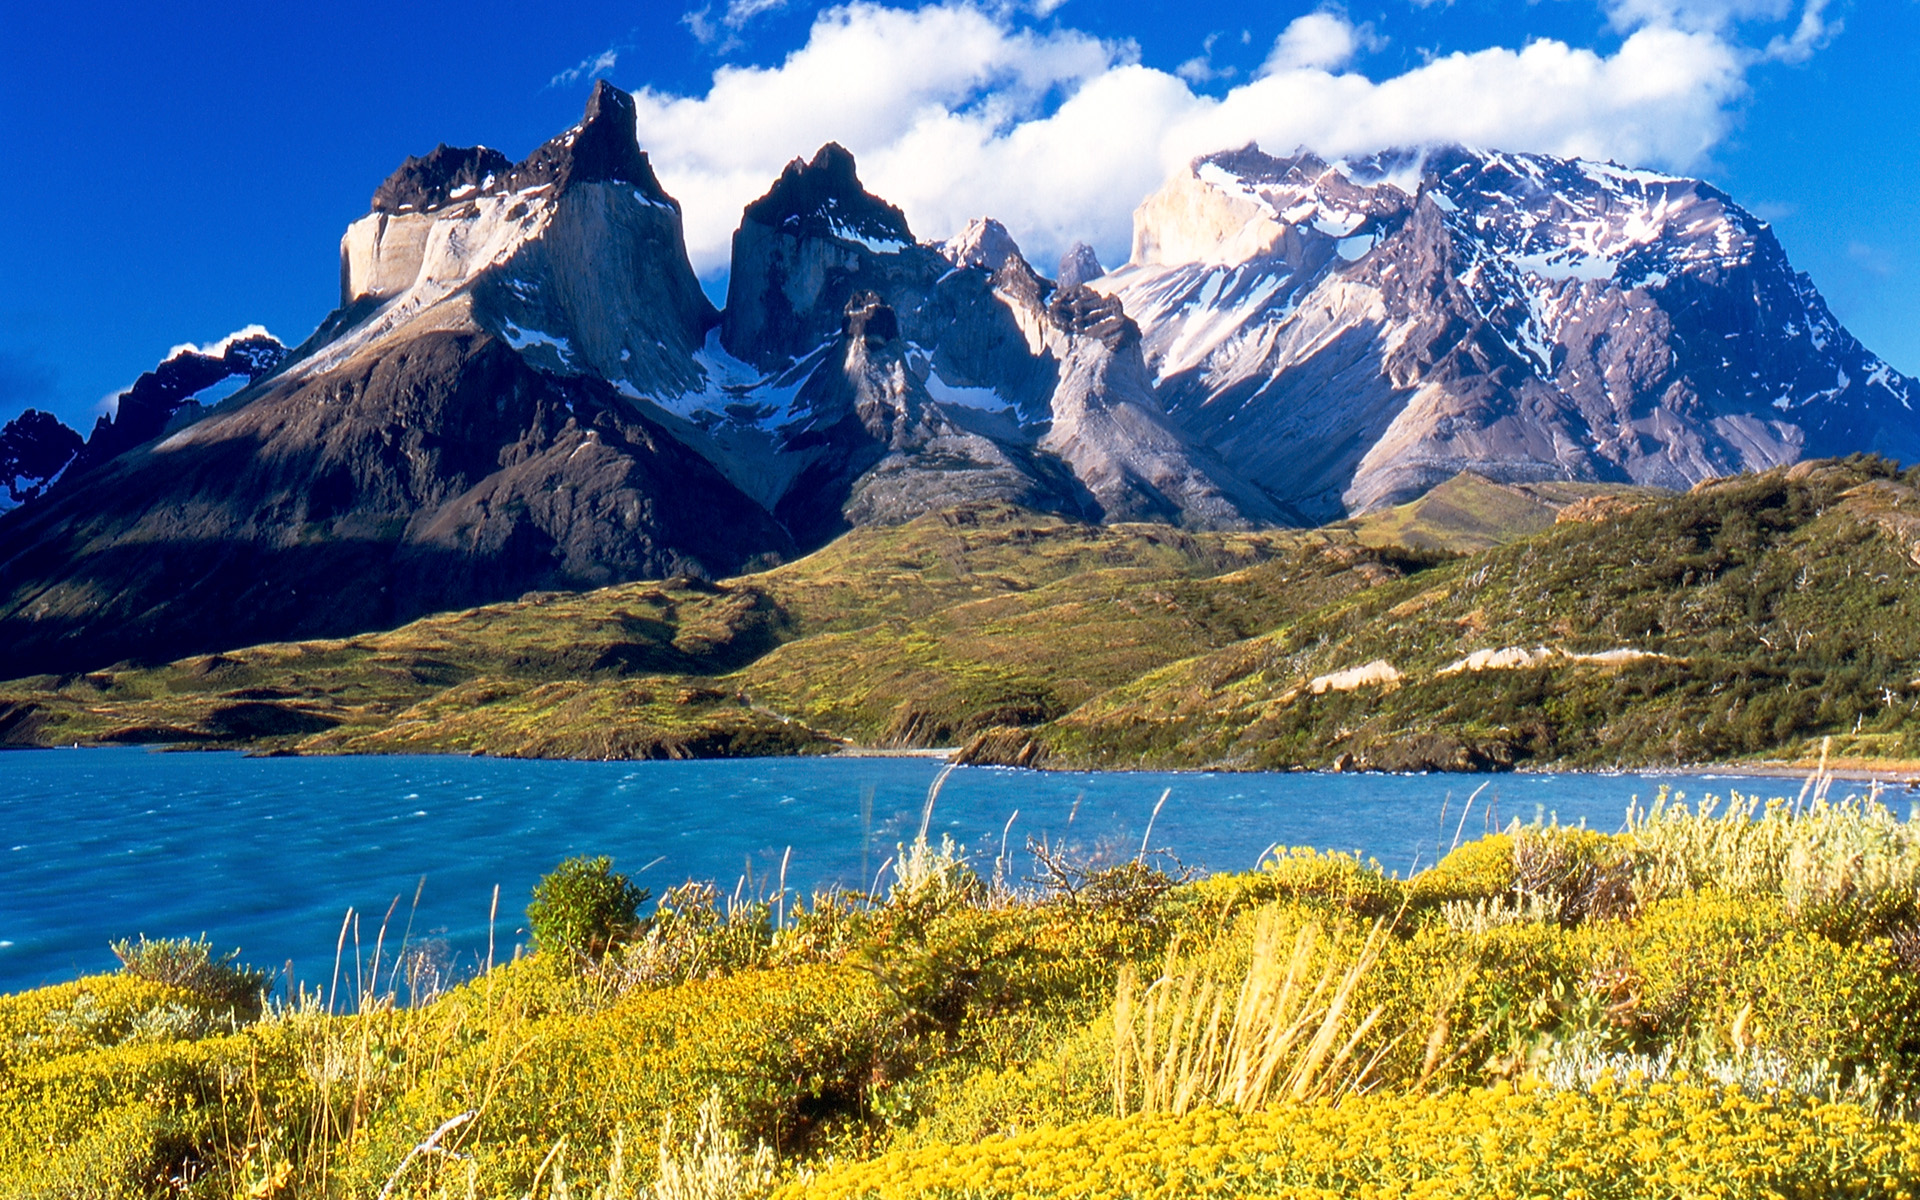 HUFFPOST – Chile Establishes 10 Million Acres Of National Parks in 'Gigantic' Move For Conservation